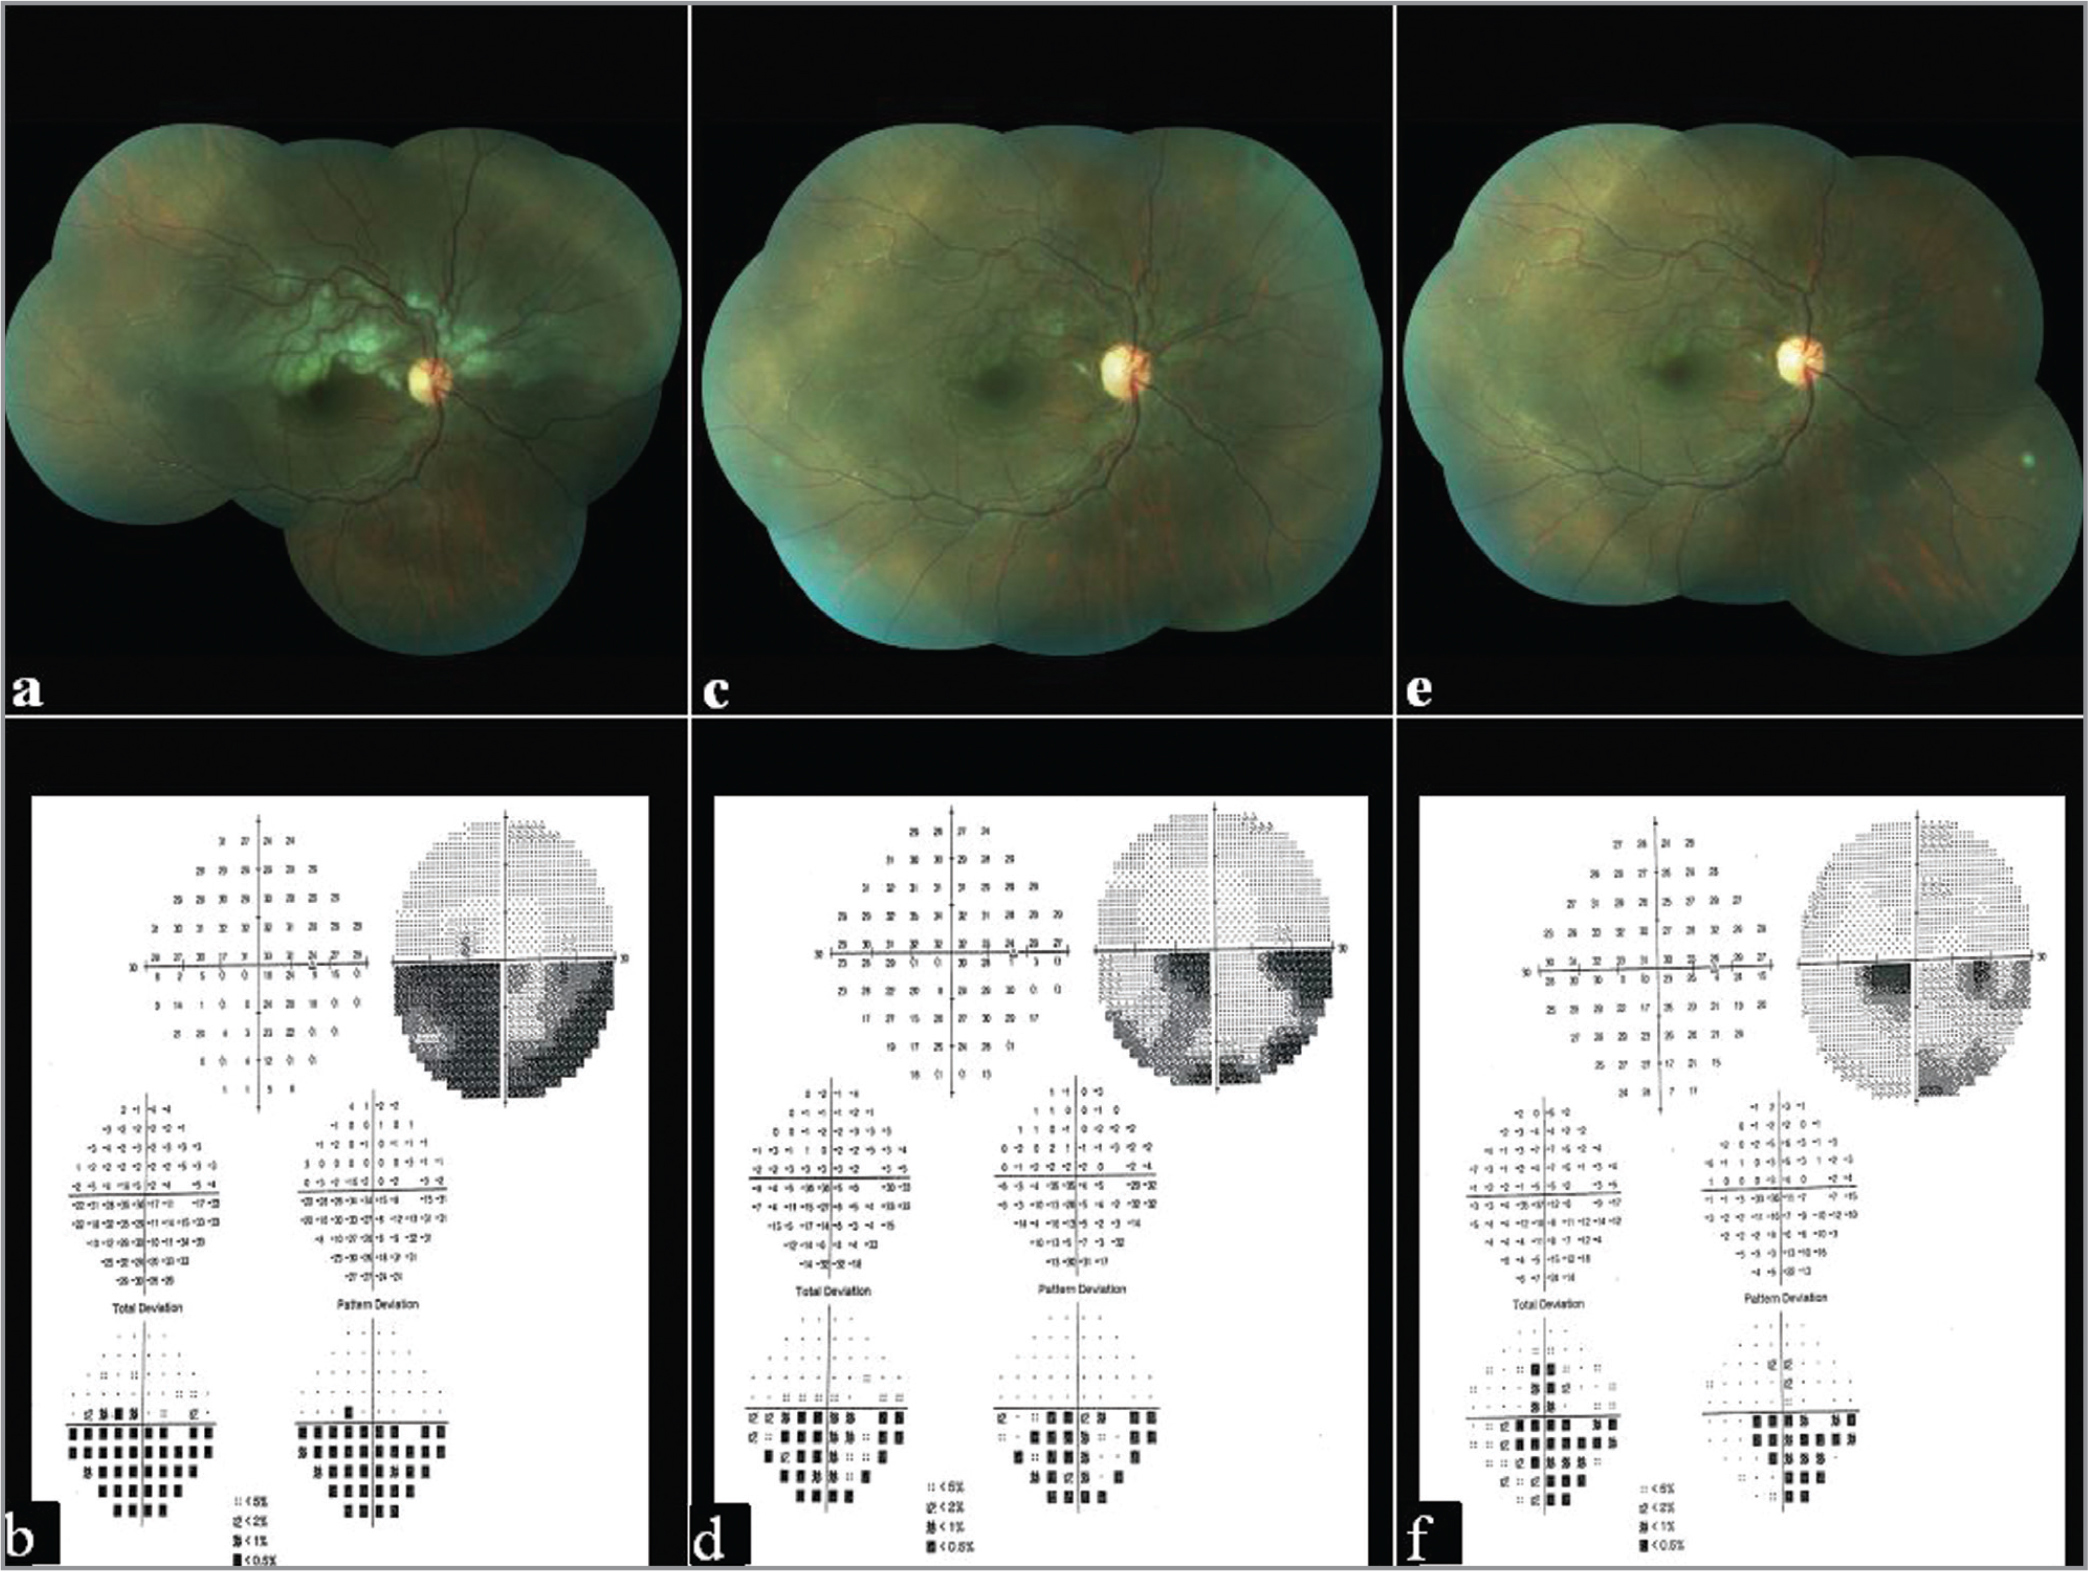 (a) Fundus photo showing opacification of the right eye superior hemi-retina 3 days post-procedure. (b) Humphrey Visual Field (30-2) showing presence of inferior hemi-field defect in the right eye. (c, e) Fundus photos showing decrease in retinal whitening at 4 weeks and 7 weeks, respectively. (d, f) Visual fields showing improvement in hemi-field defect at 4 weeks and 7 weeks, respectively.